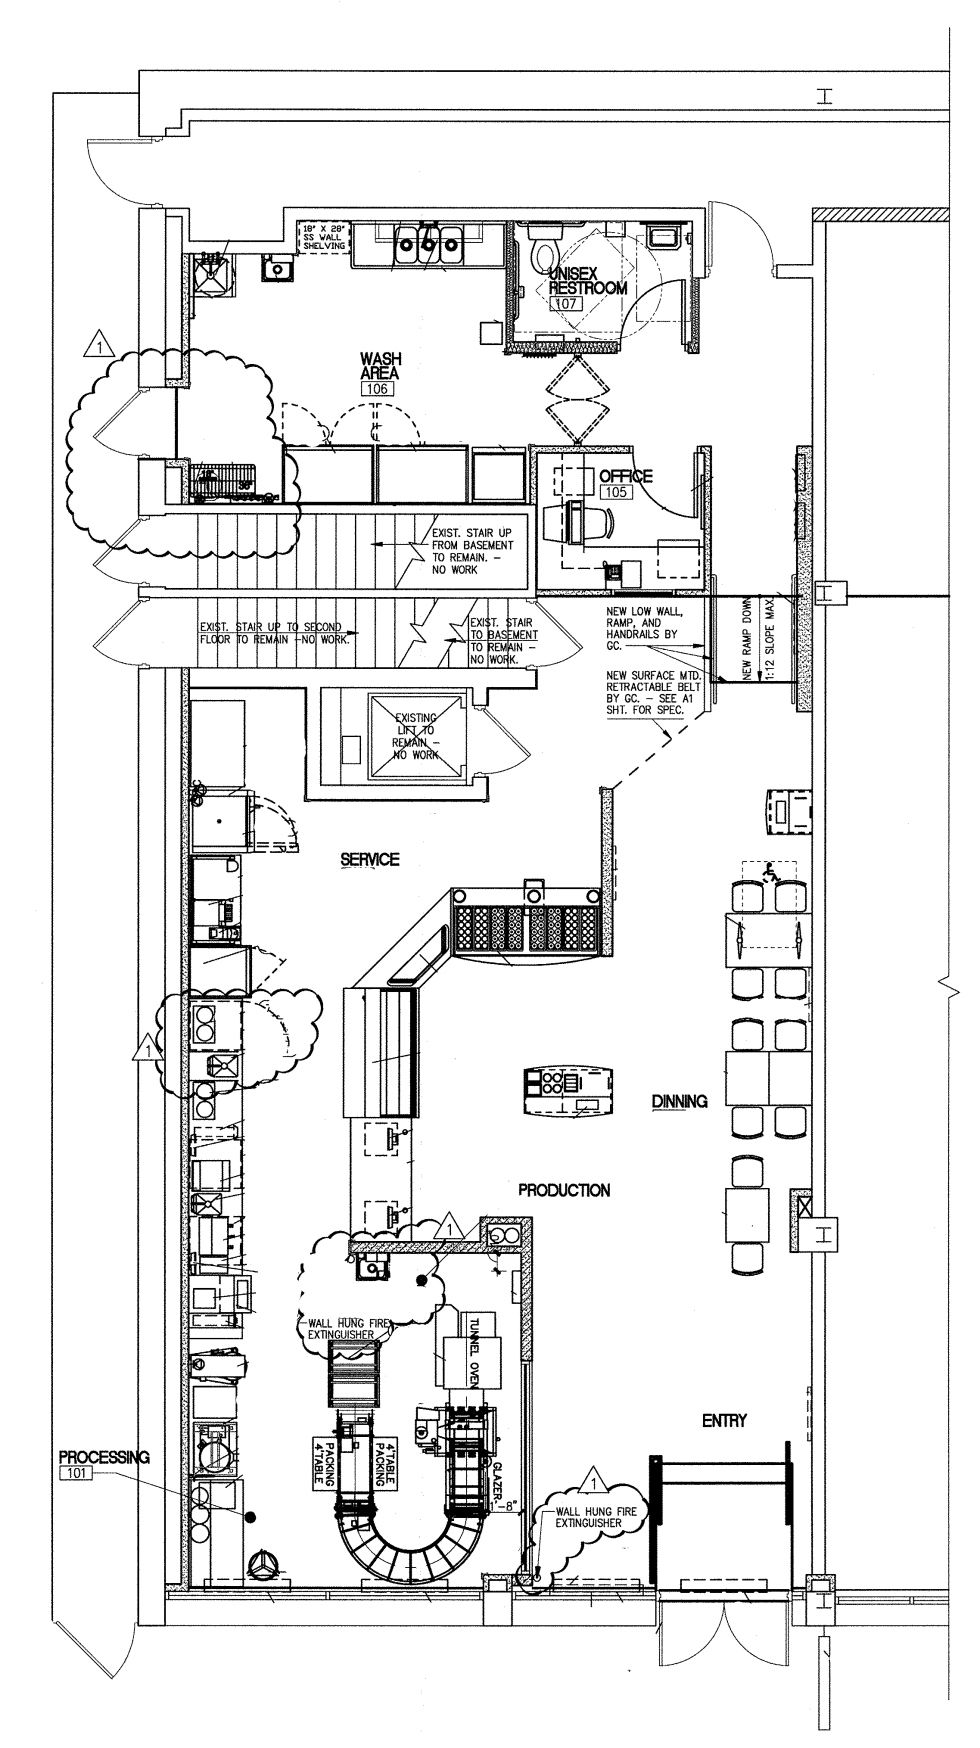 Floor Plan for Krispy Kreme Chestnut Street Floor plans